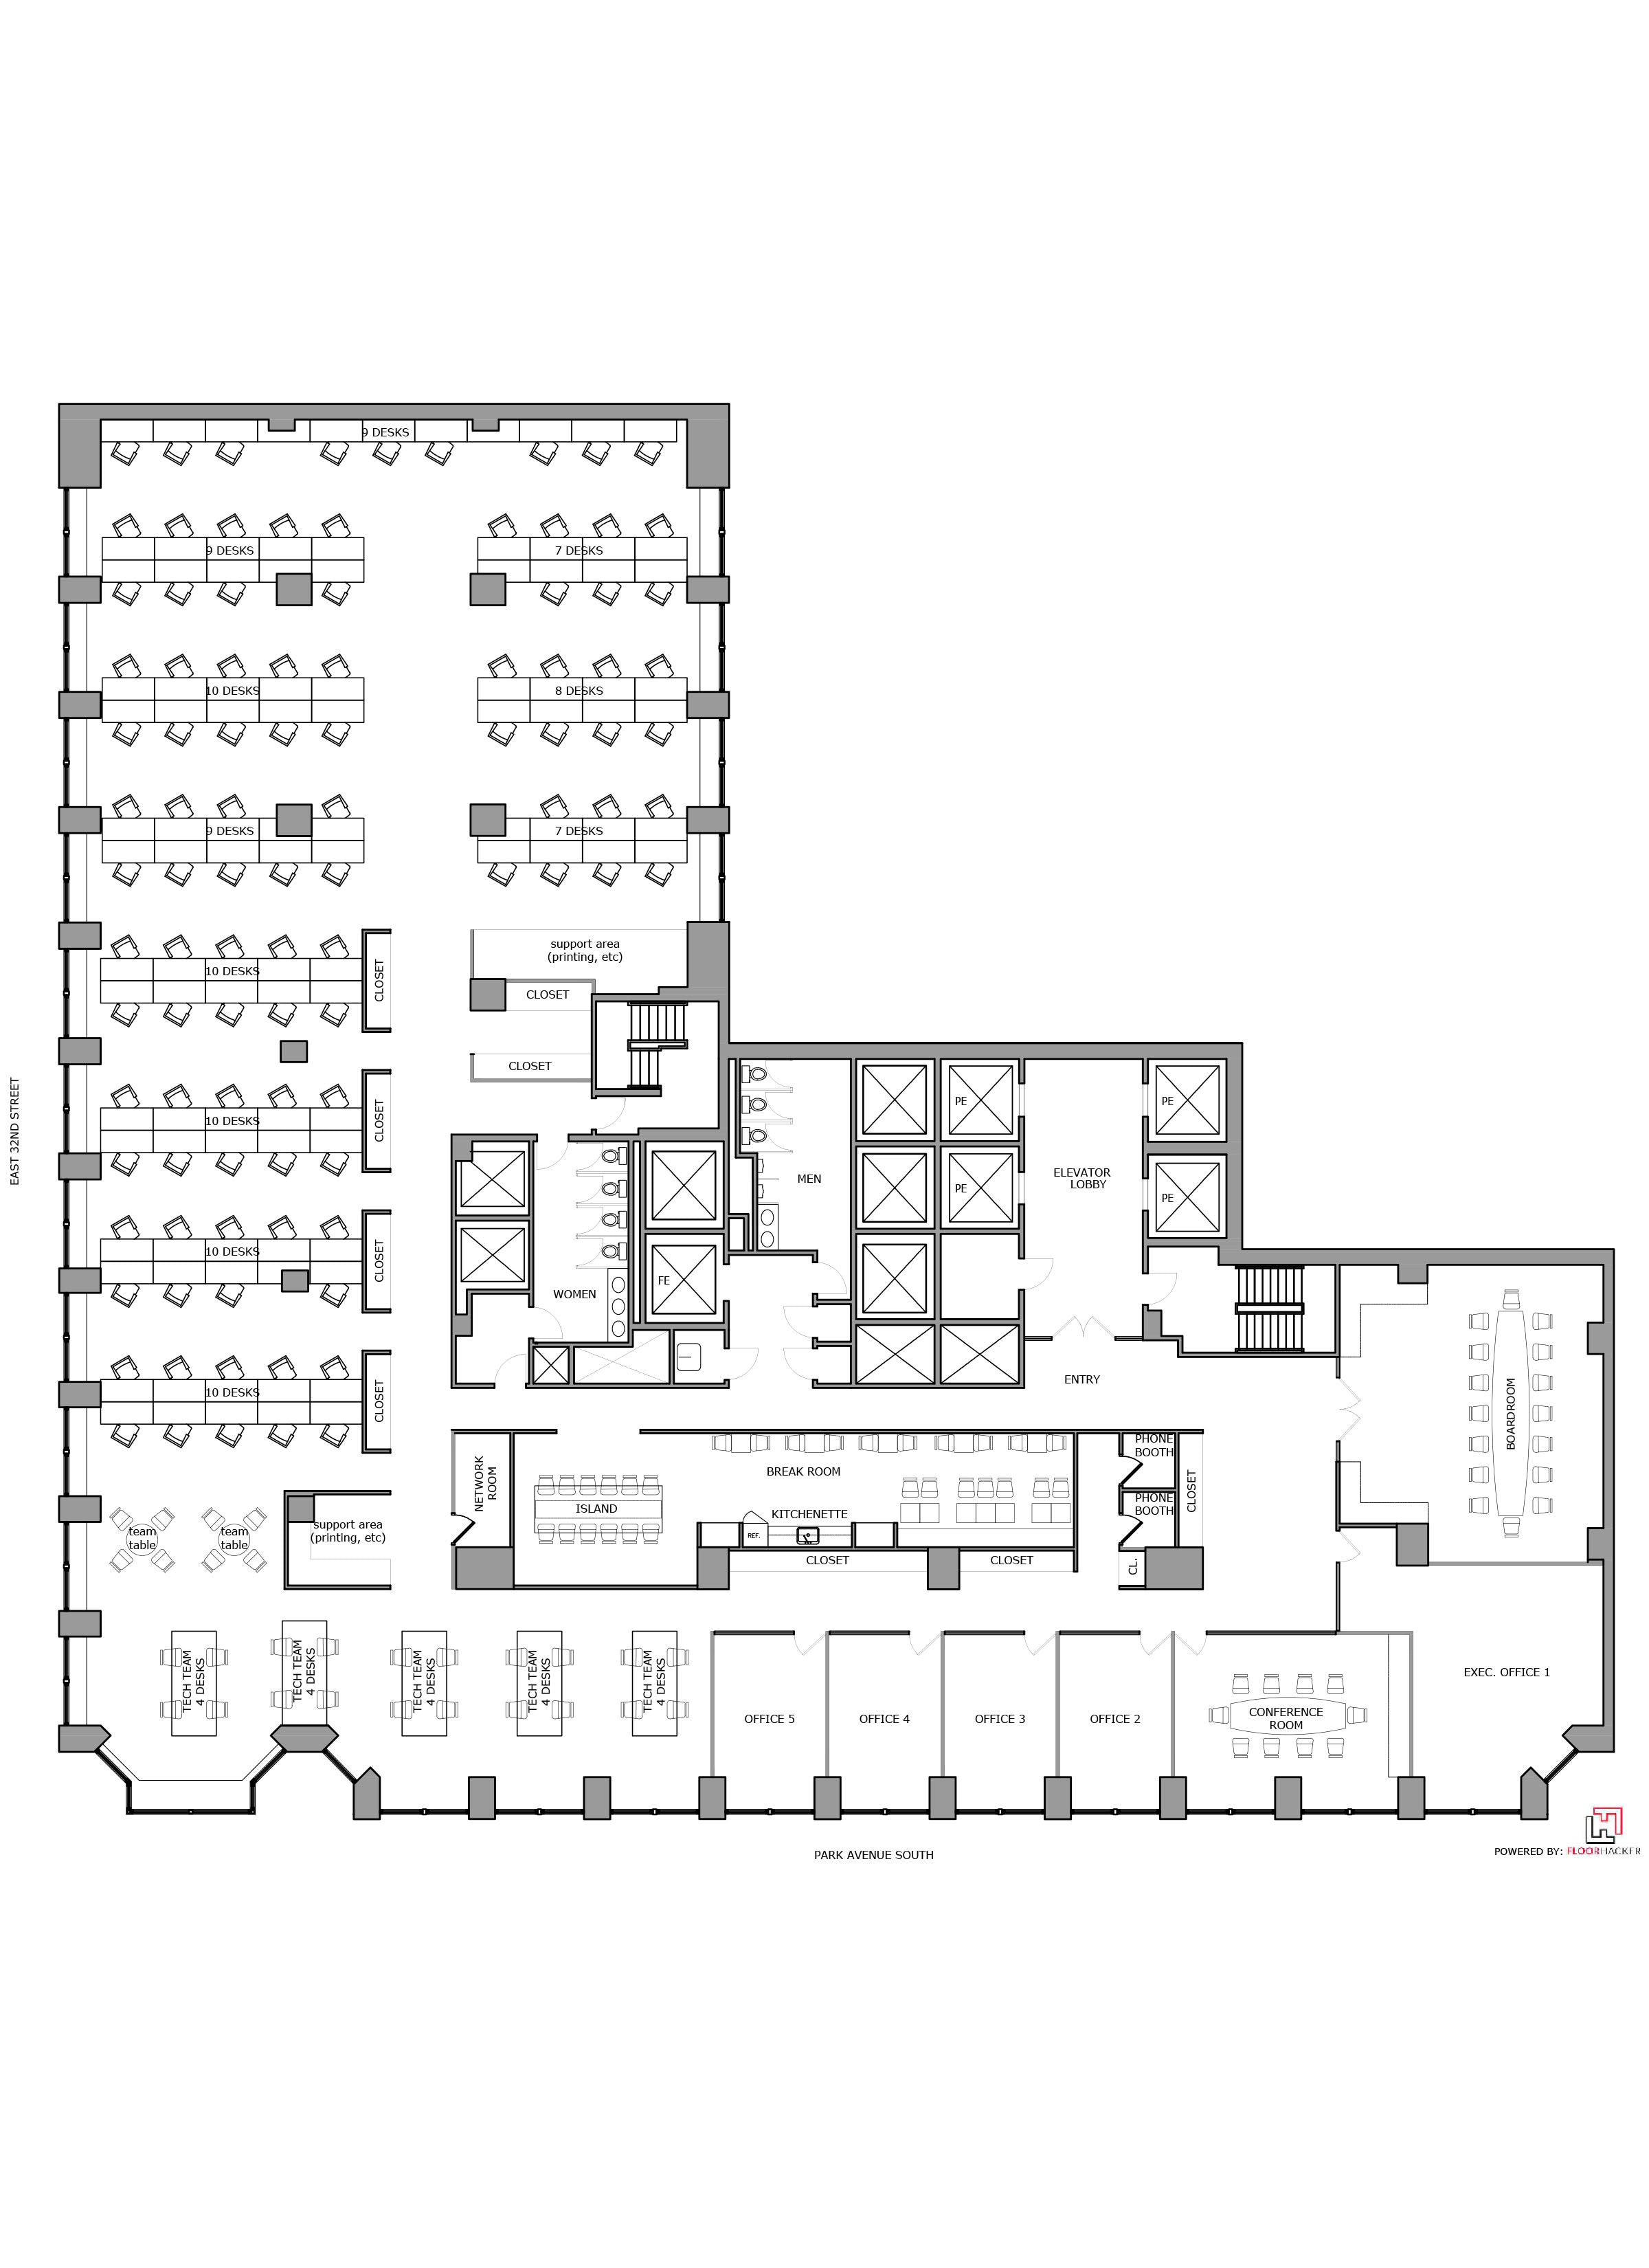 Floor Plan Design - Office Test Fit_Park Avenue South PAS, NYC